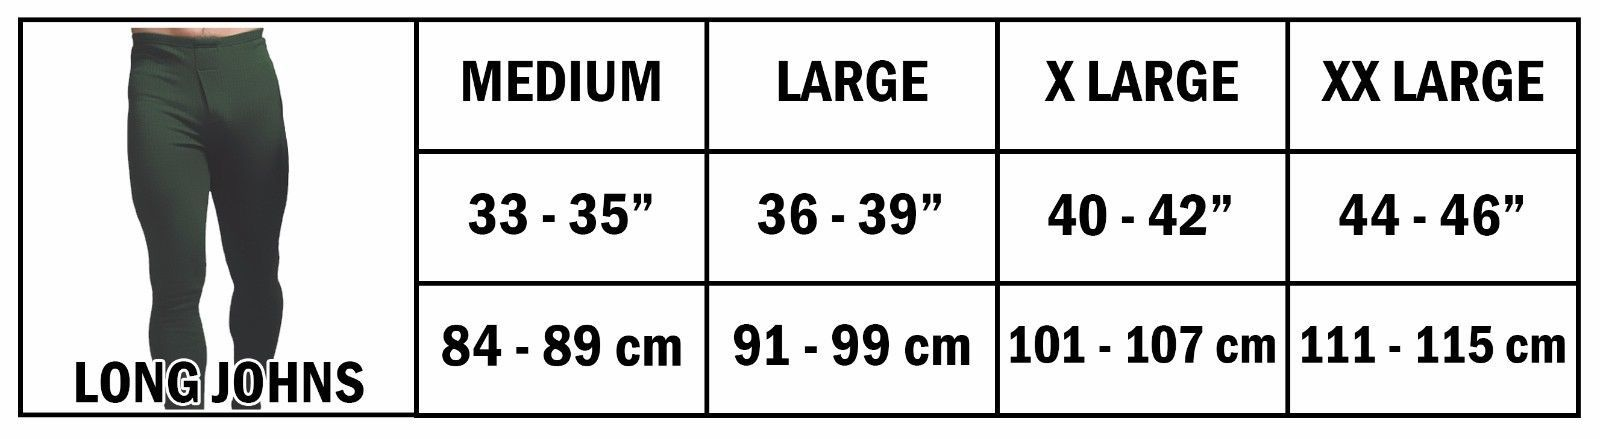 Forestman - Mens Thin Warm Ribbed Cotton Thermal Underwear Long Johns Bottoms